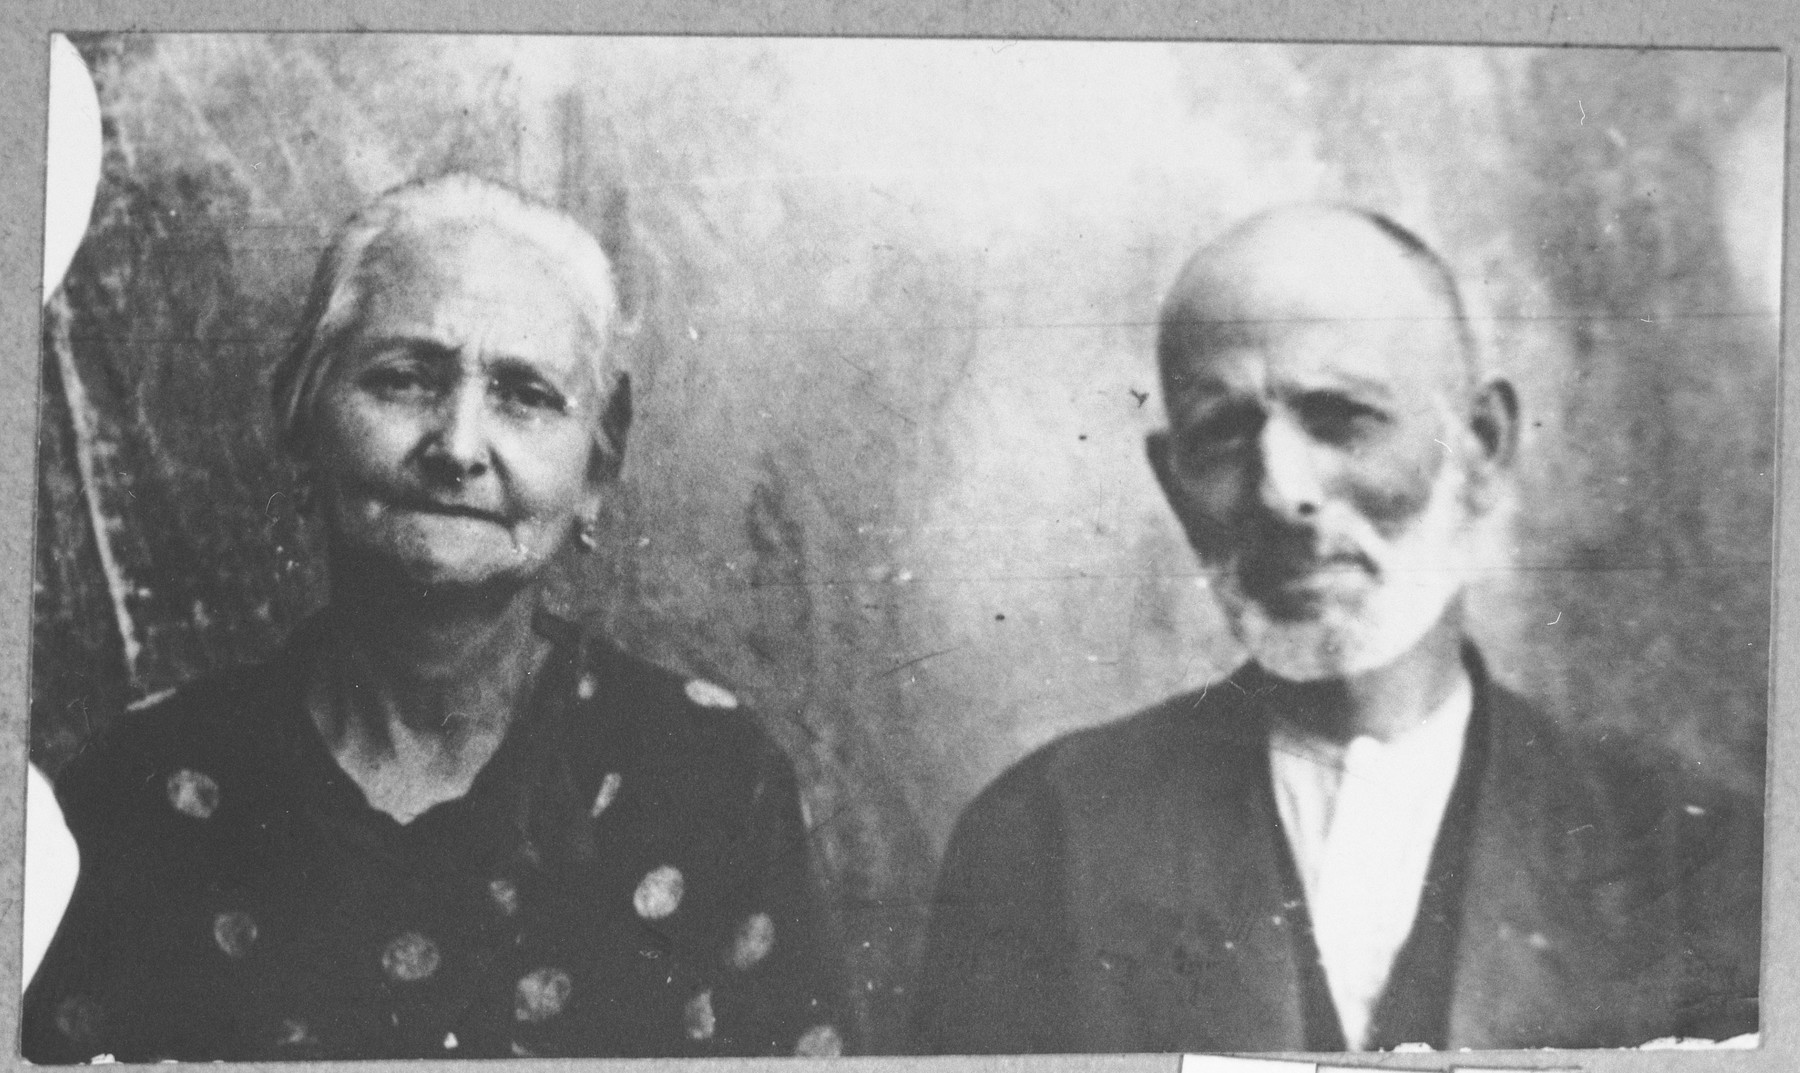 Portrait of Ovadia Kalderon and his wife, Lia.  They lived at Putnika 137 in Bitola.